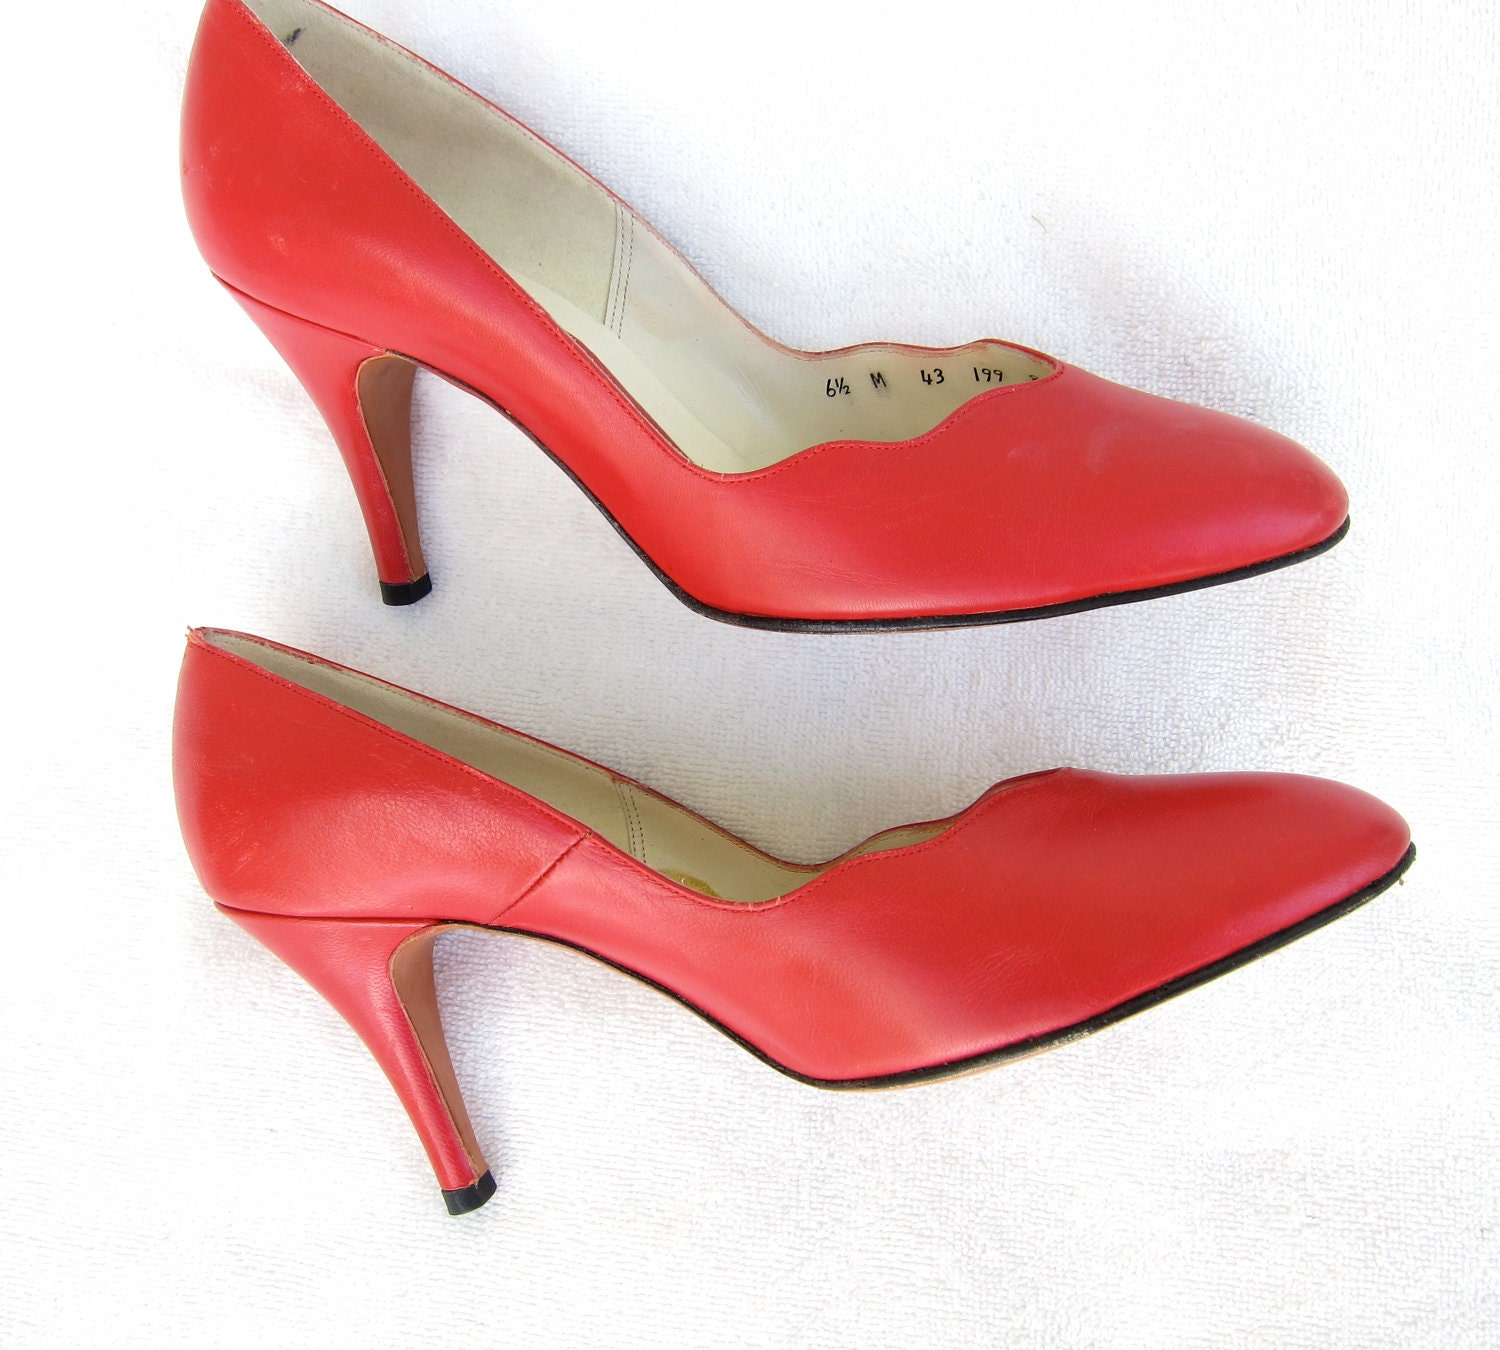 80s Lipstick Red Vintage Shoes Scallops Leather by JoulesVintage